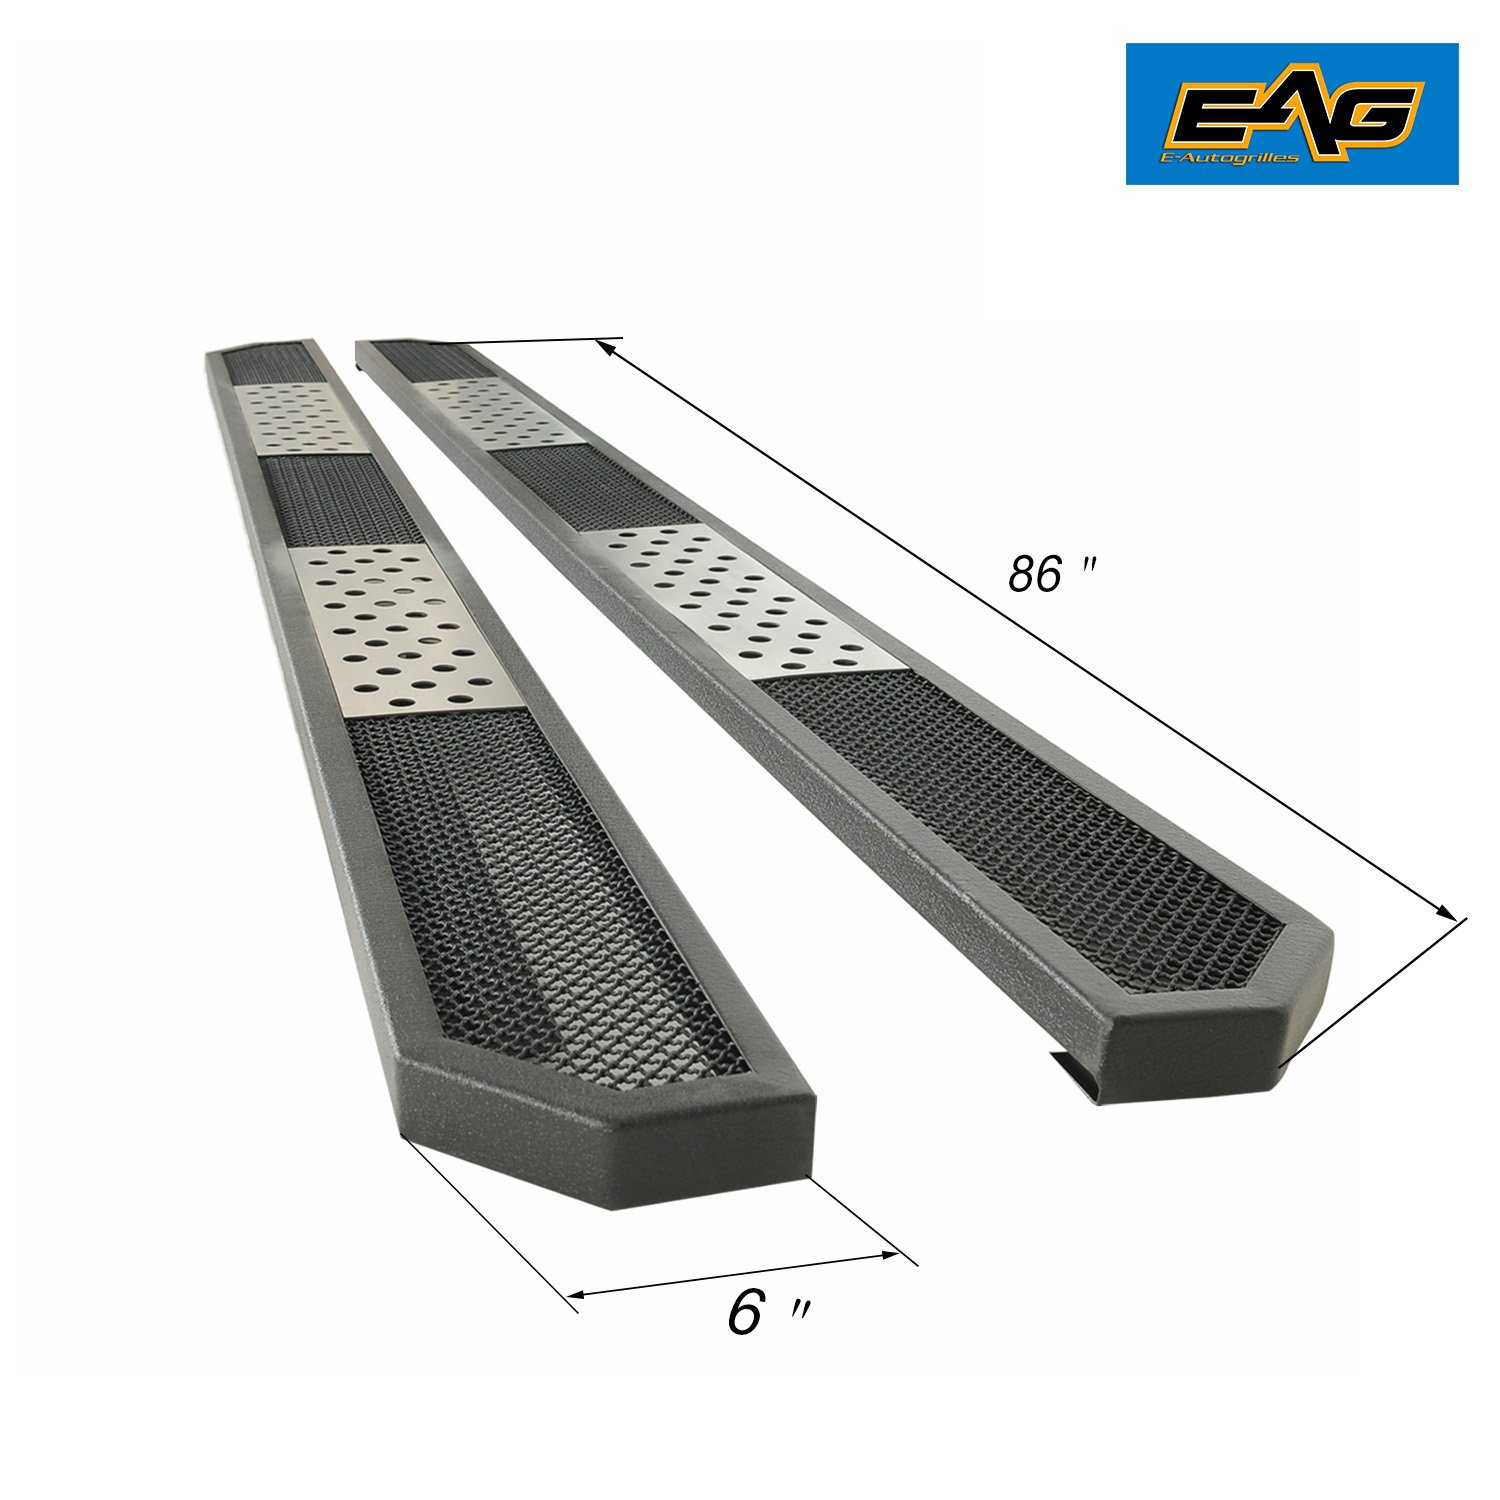 EAG 86'' Evolution Running Board and Brackets for 99-16 Super Duty Super Crew